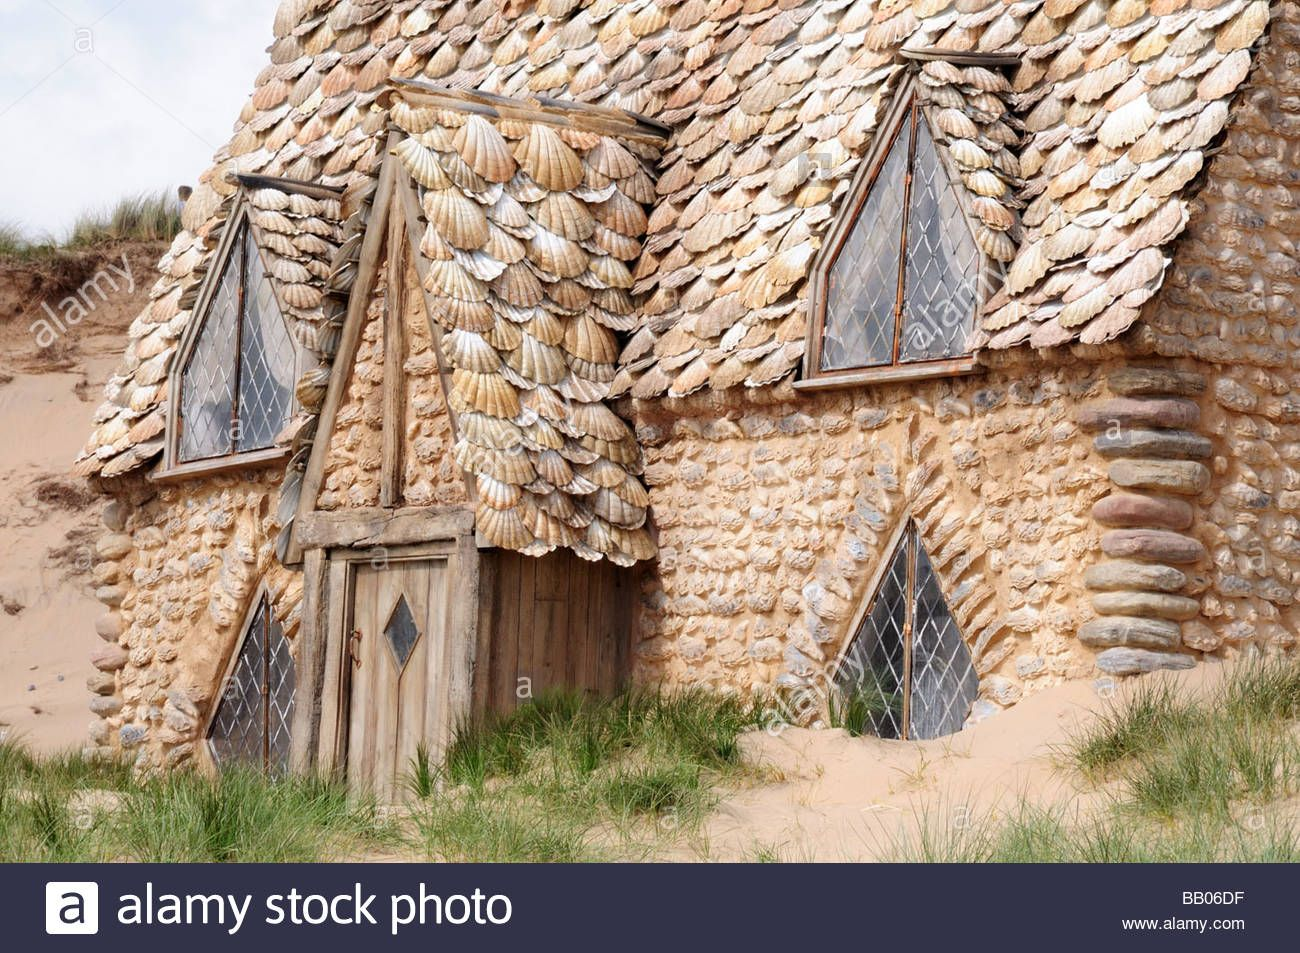 Close Up Of Shell Cottage Set For Harry Potter Film Deathly Hallows Stock Photo Royalty Free Image 23976667 Alamy Cottage Harry Potter Film Shell House